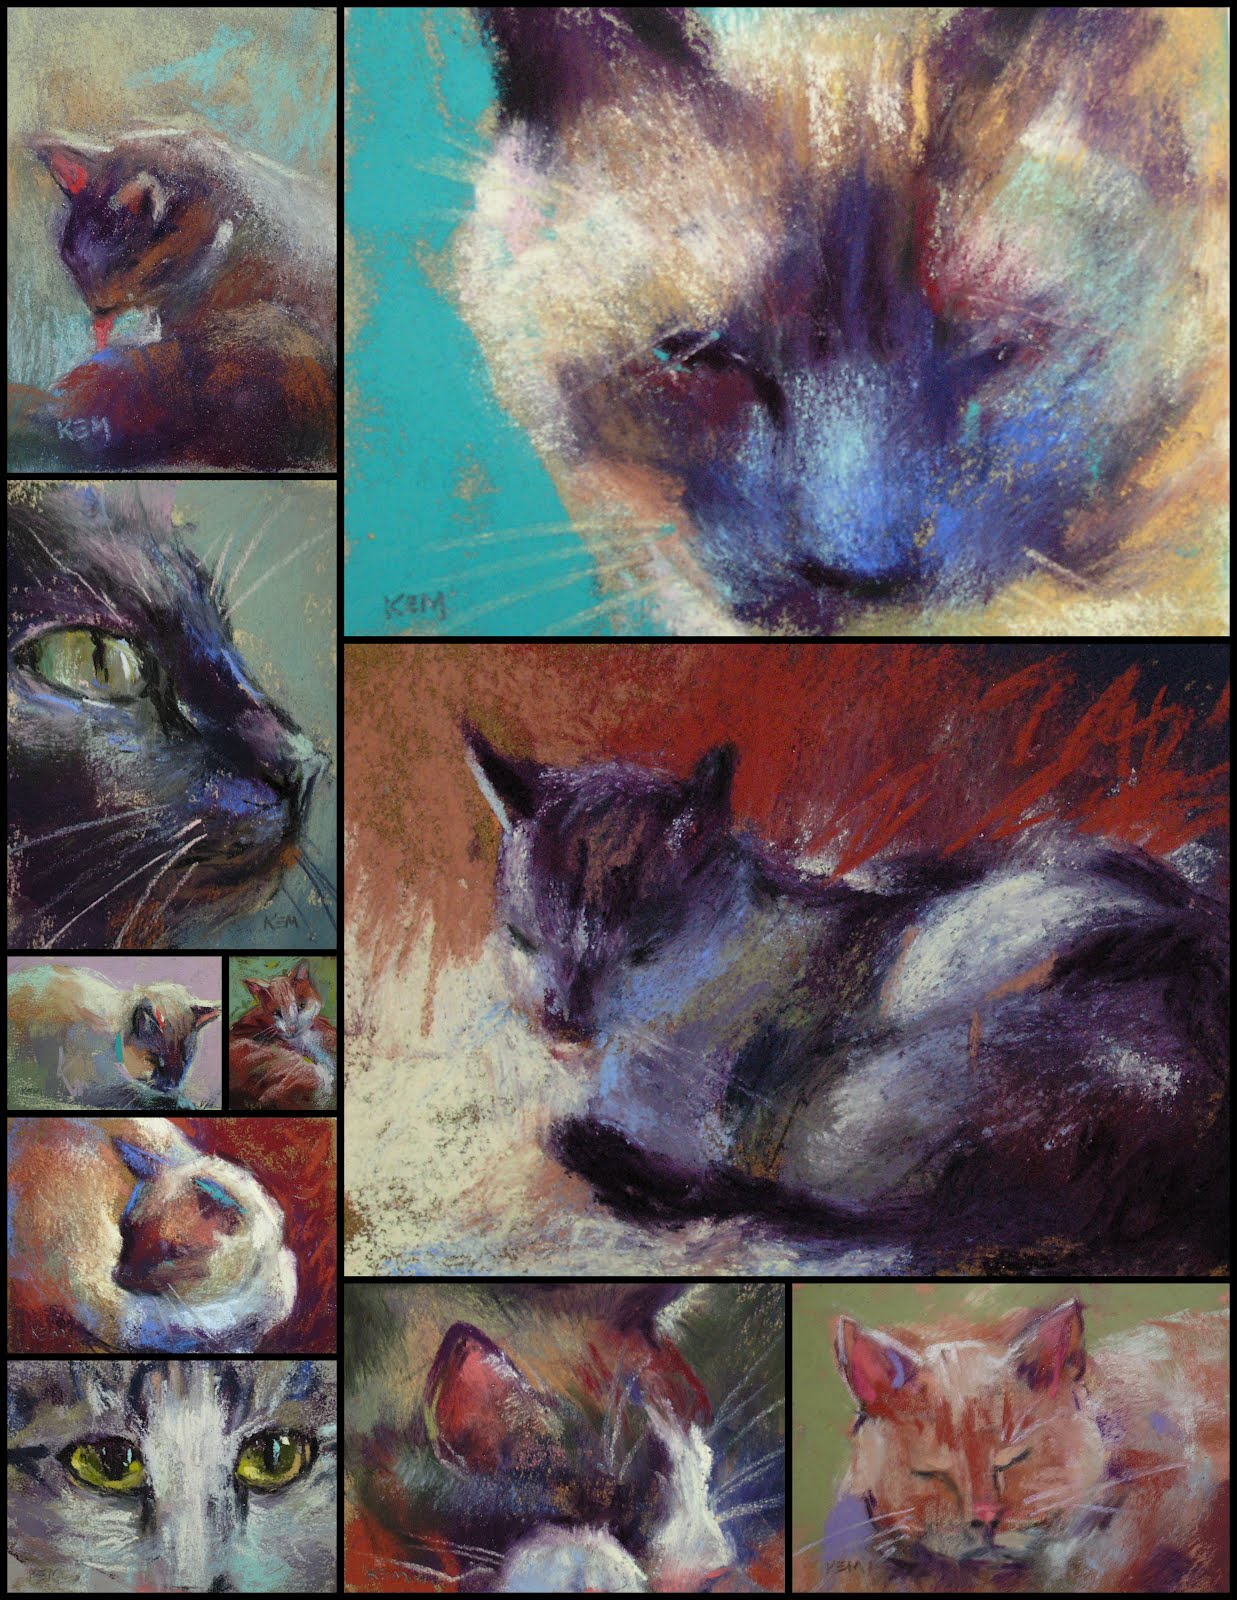 Color of cats fur - The Photo Above Shows A Collection Of My Small Cat Pastels I Used The Same Technique To Get The Fur Color As I Did For The Dog Painting